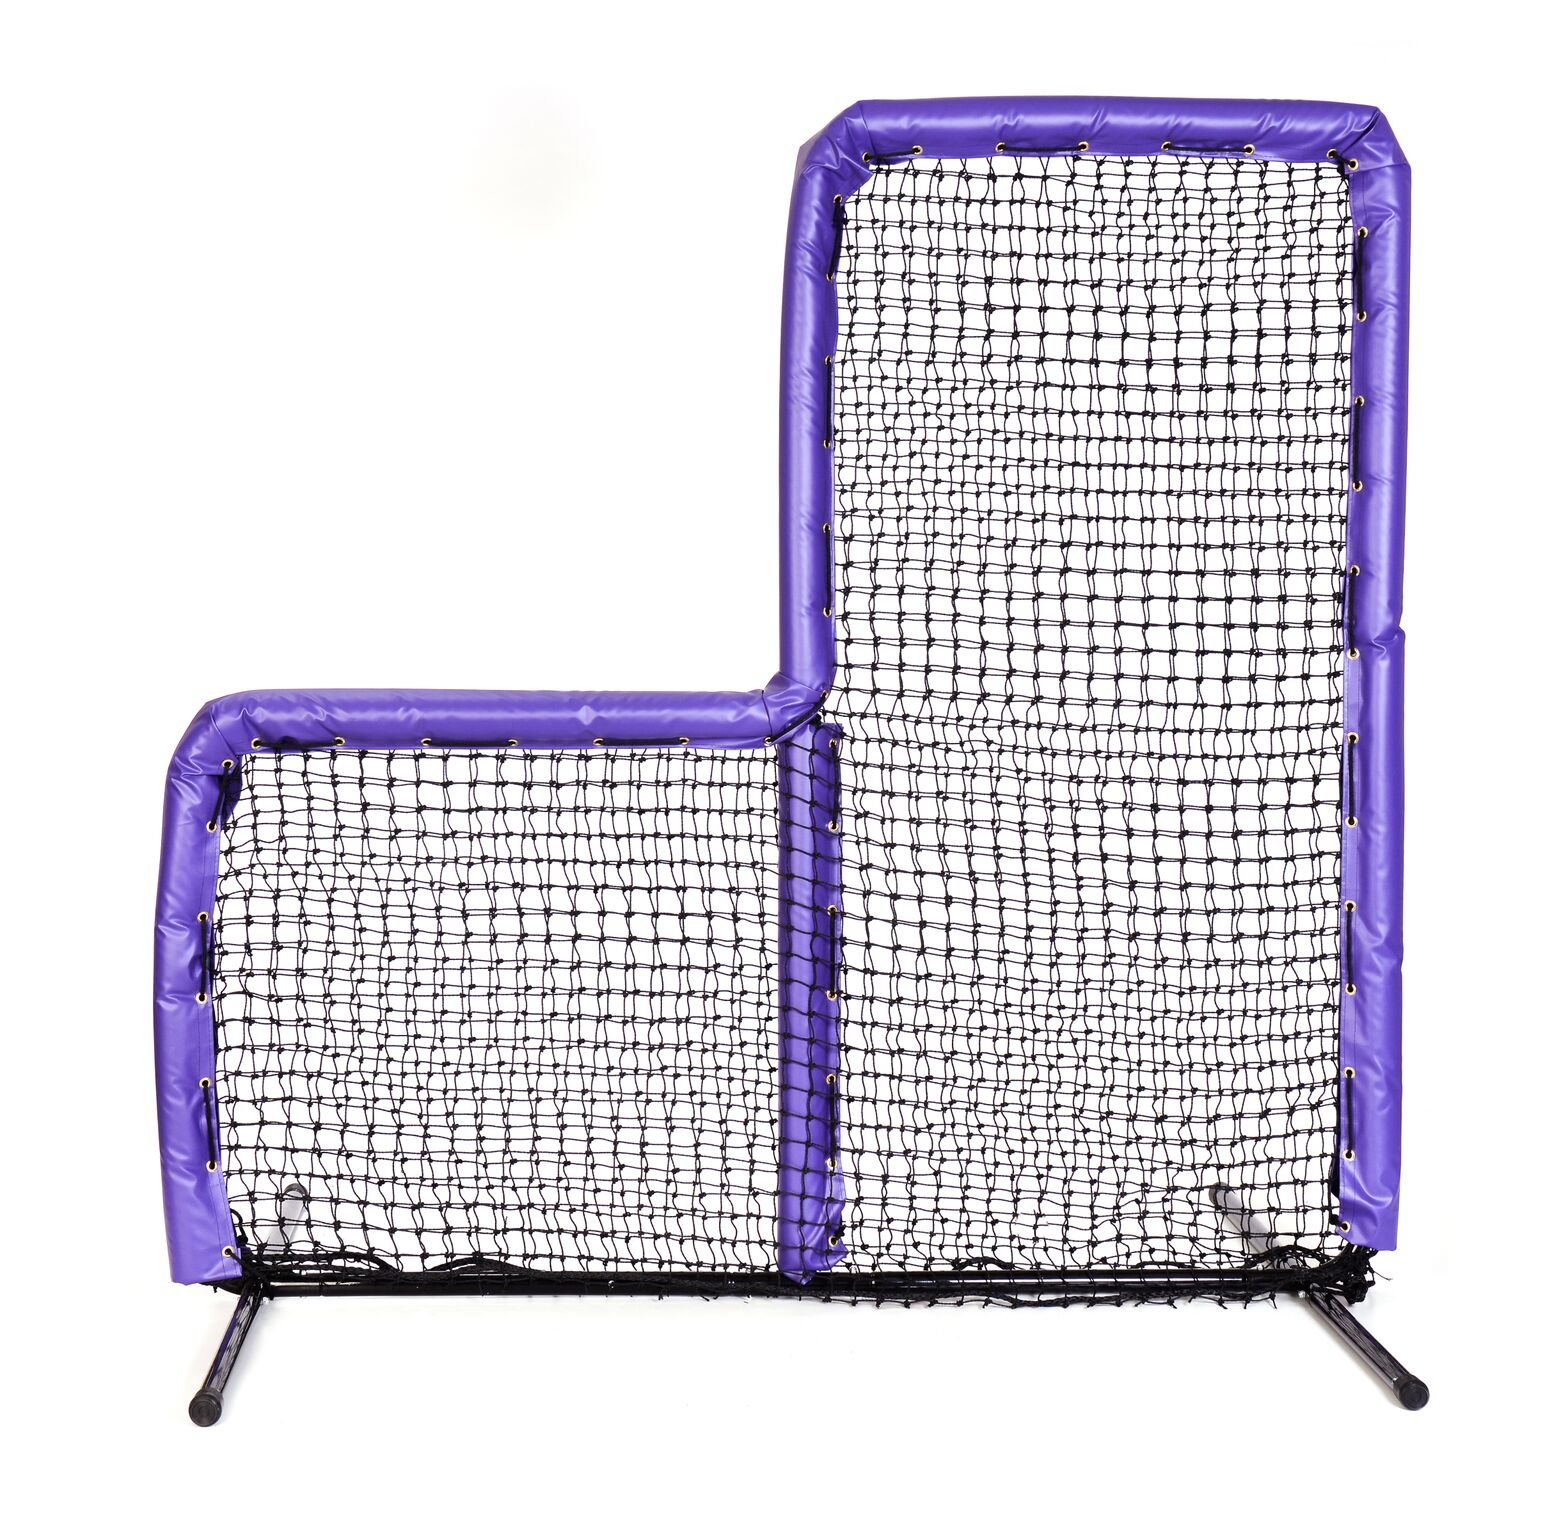 Armor Series Pitching Screen Baseball Softball Practice Net with Screen Bulletz Leg Caps. 7x7 L-Screen Perfect for Baseball and Softball Batting Practice. Choose Padding Color. (Purple) by Armor